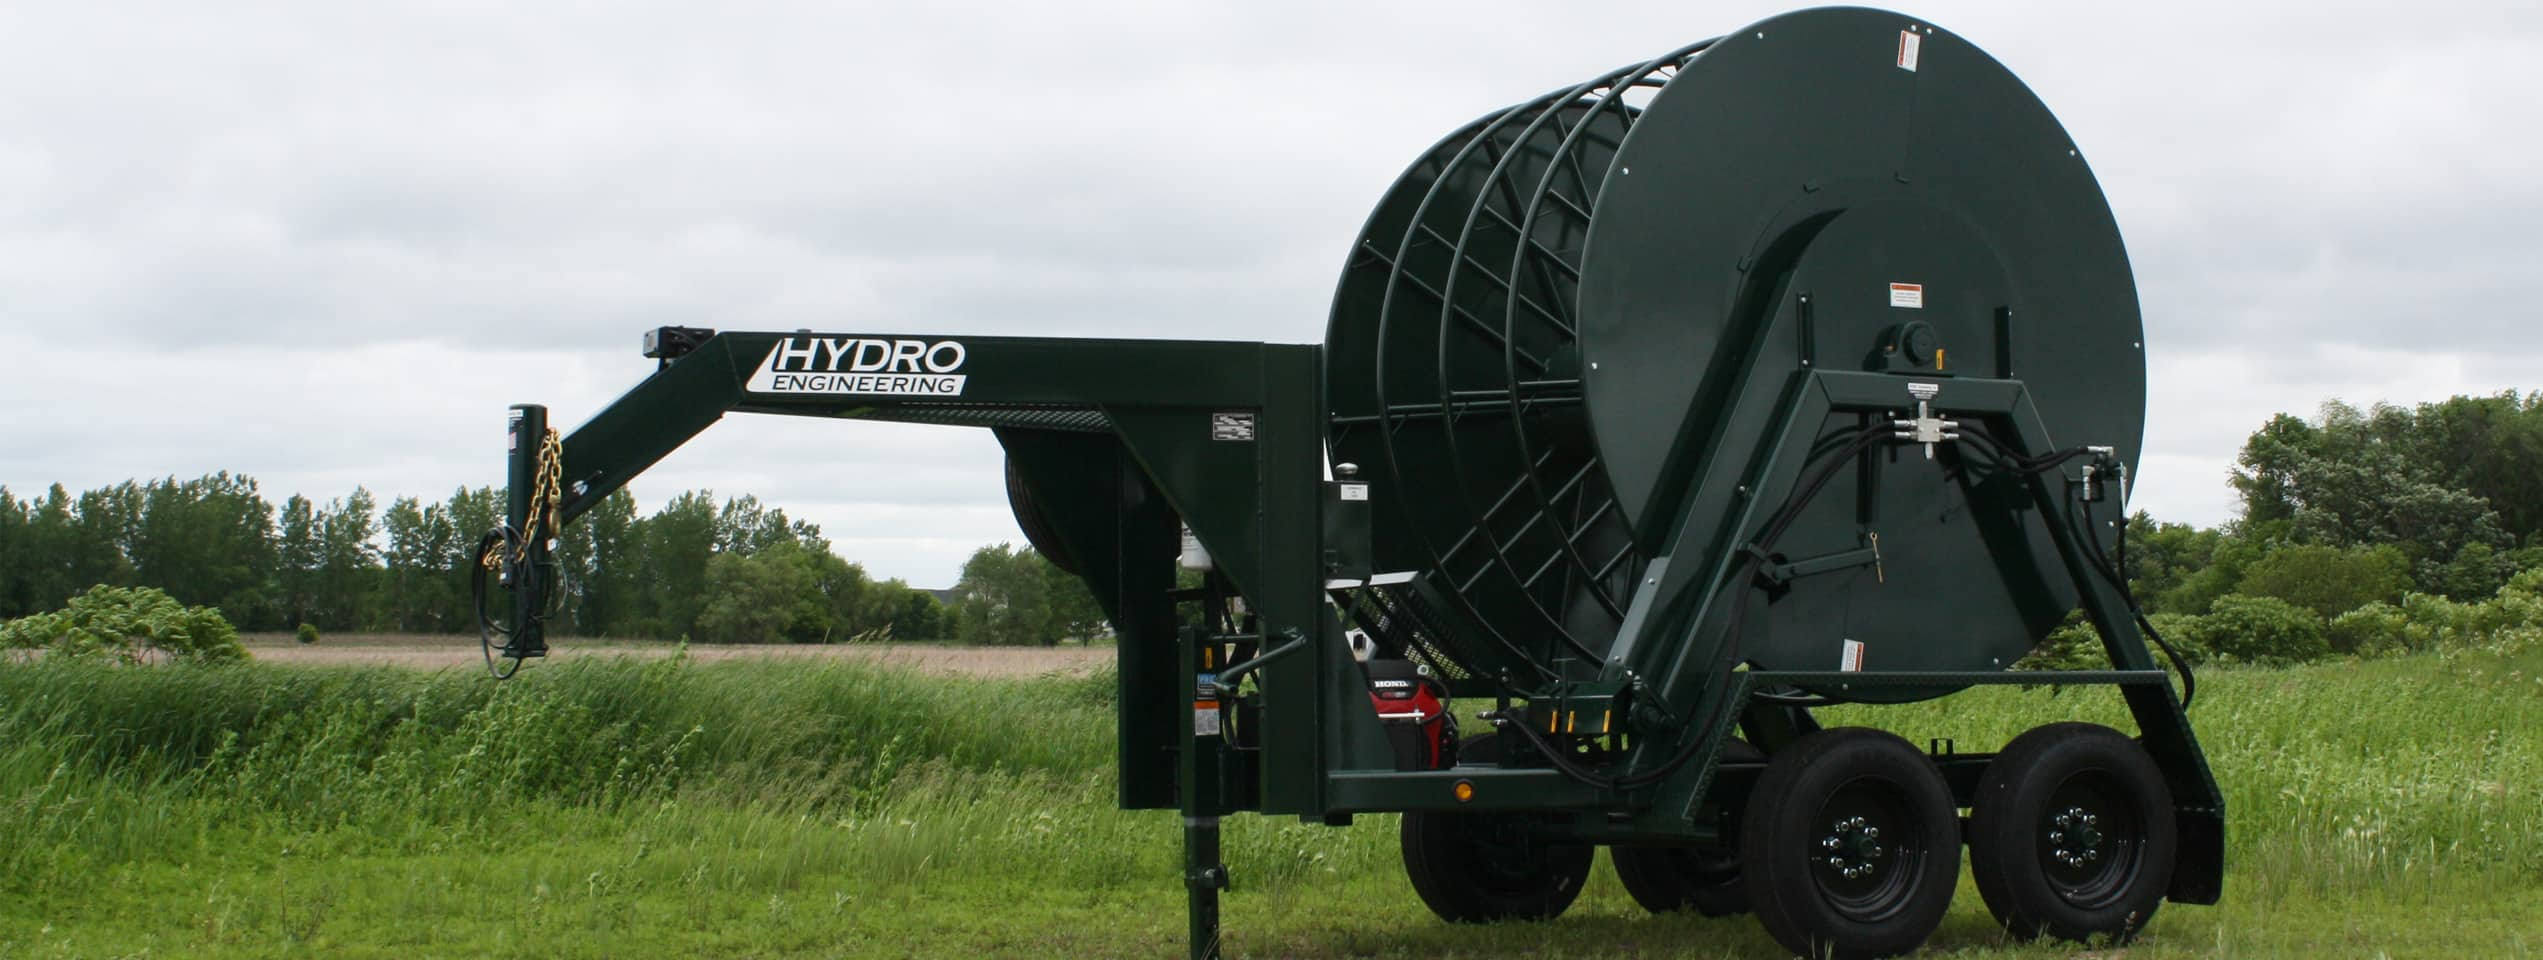 Hydro Engineering O&G Hose Reel